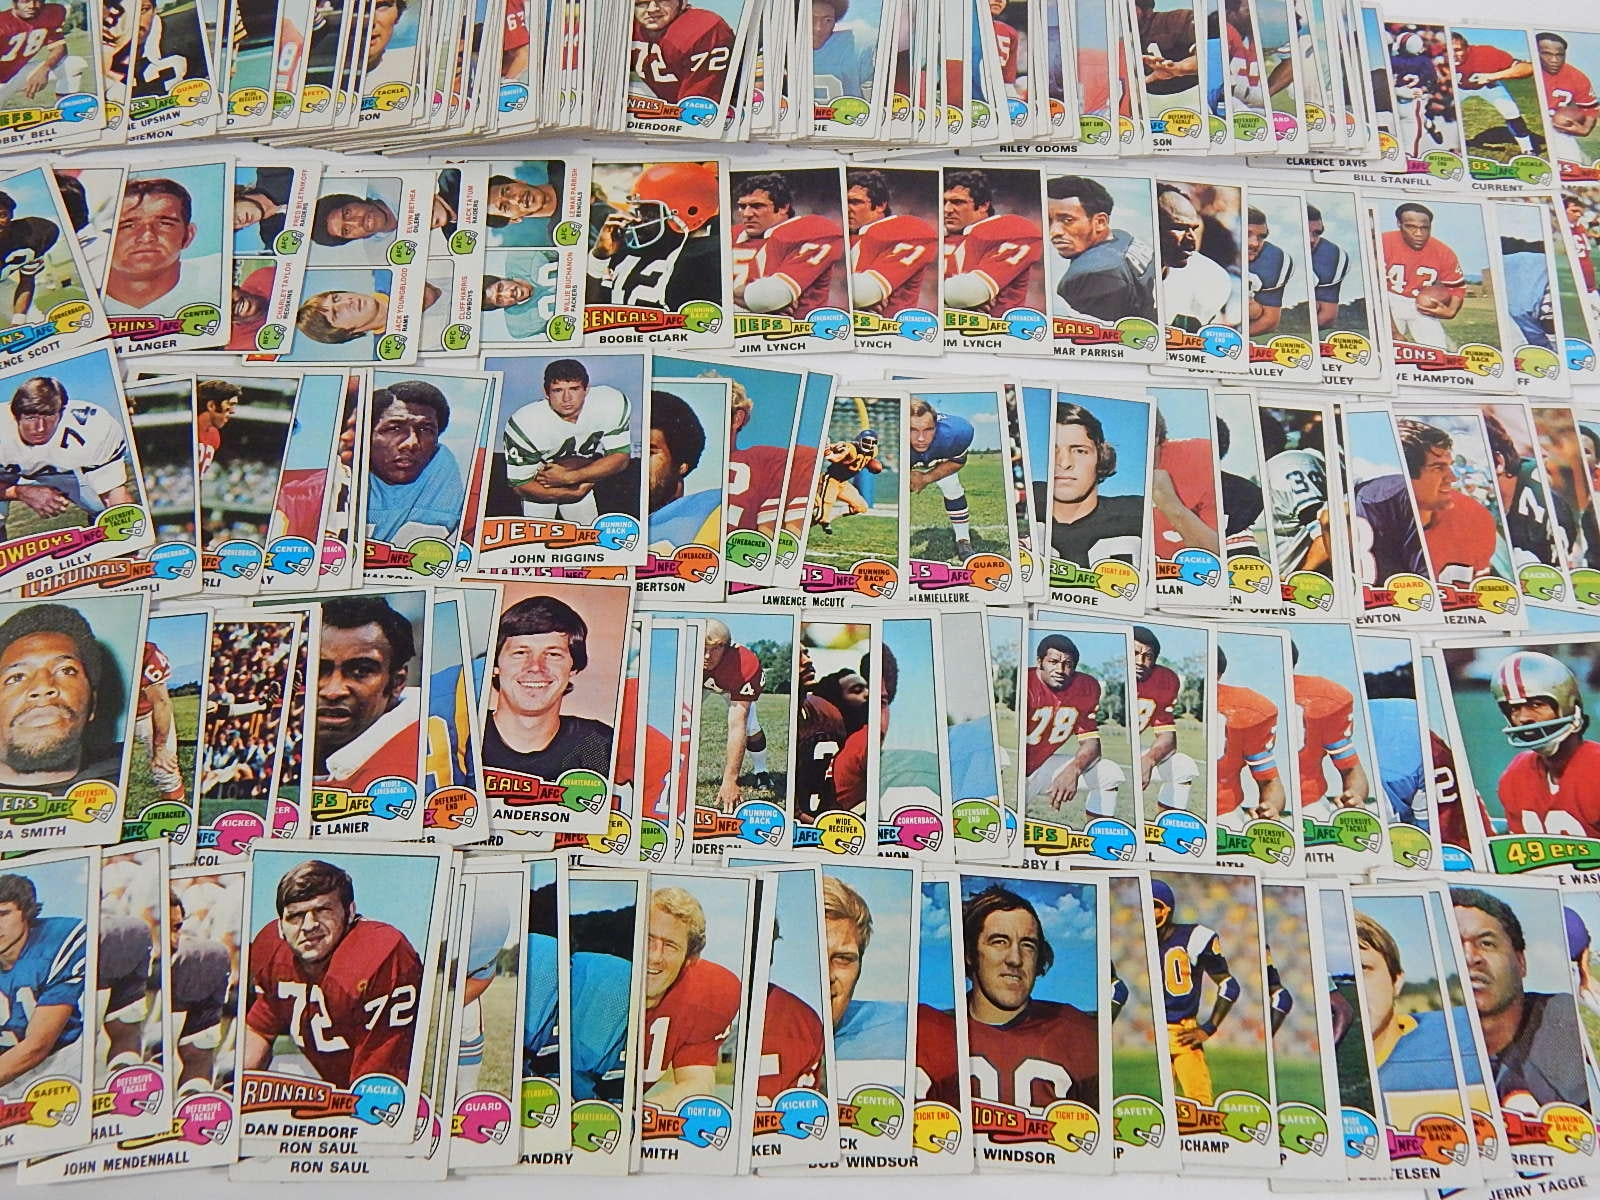 Collection of 1974 Topps Football Cards - Over 200 Card Count